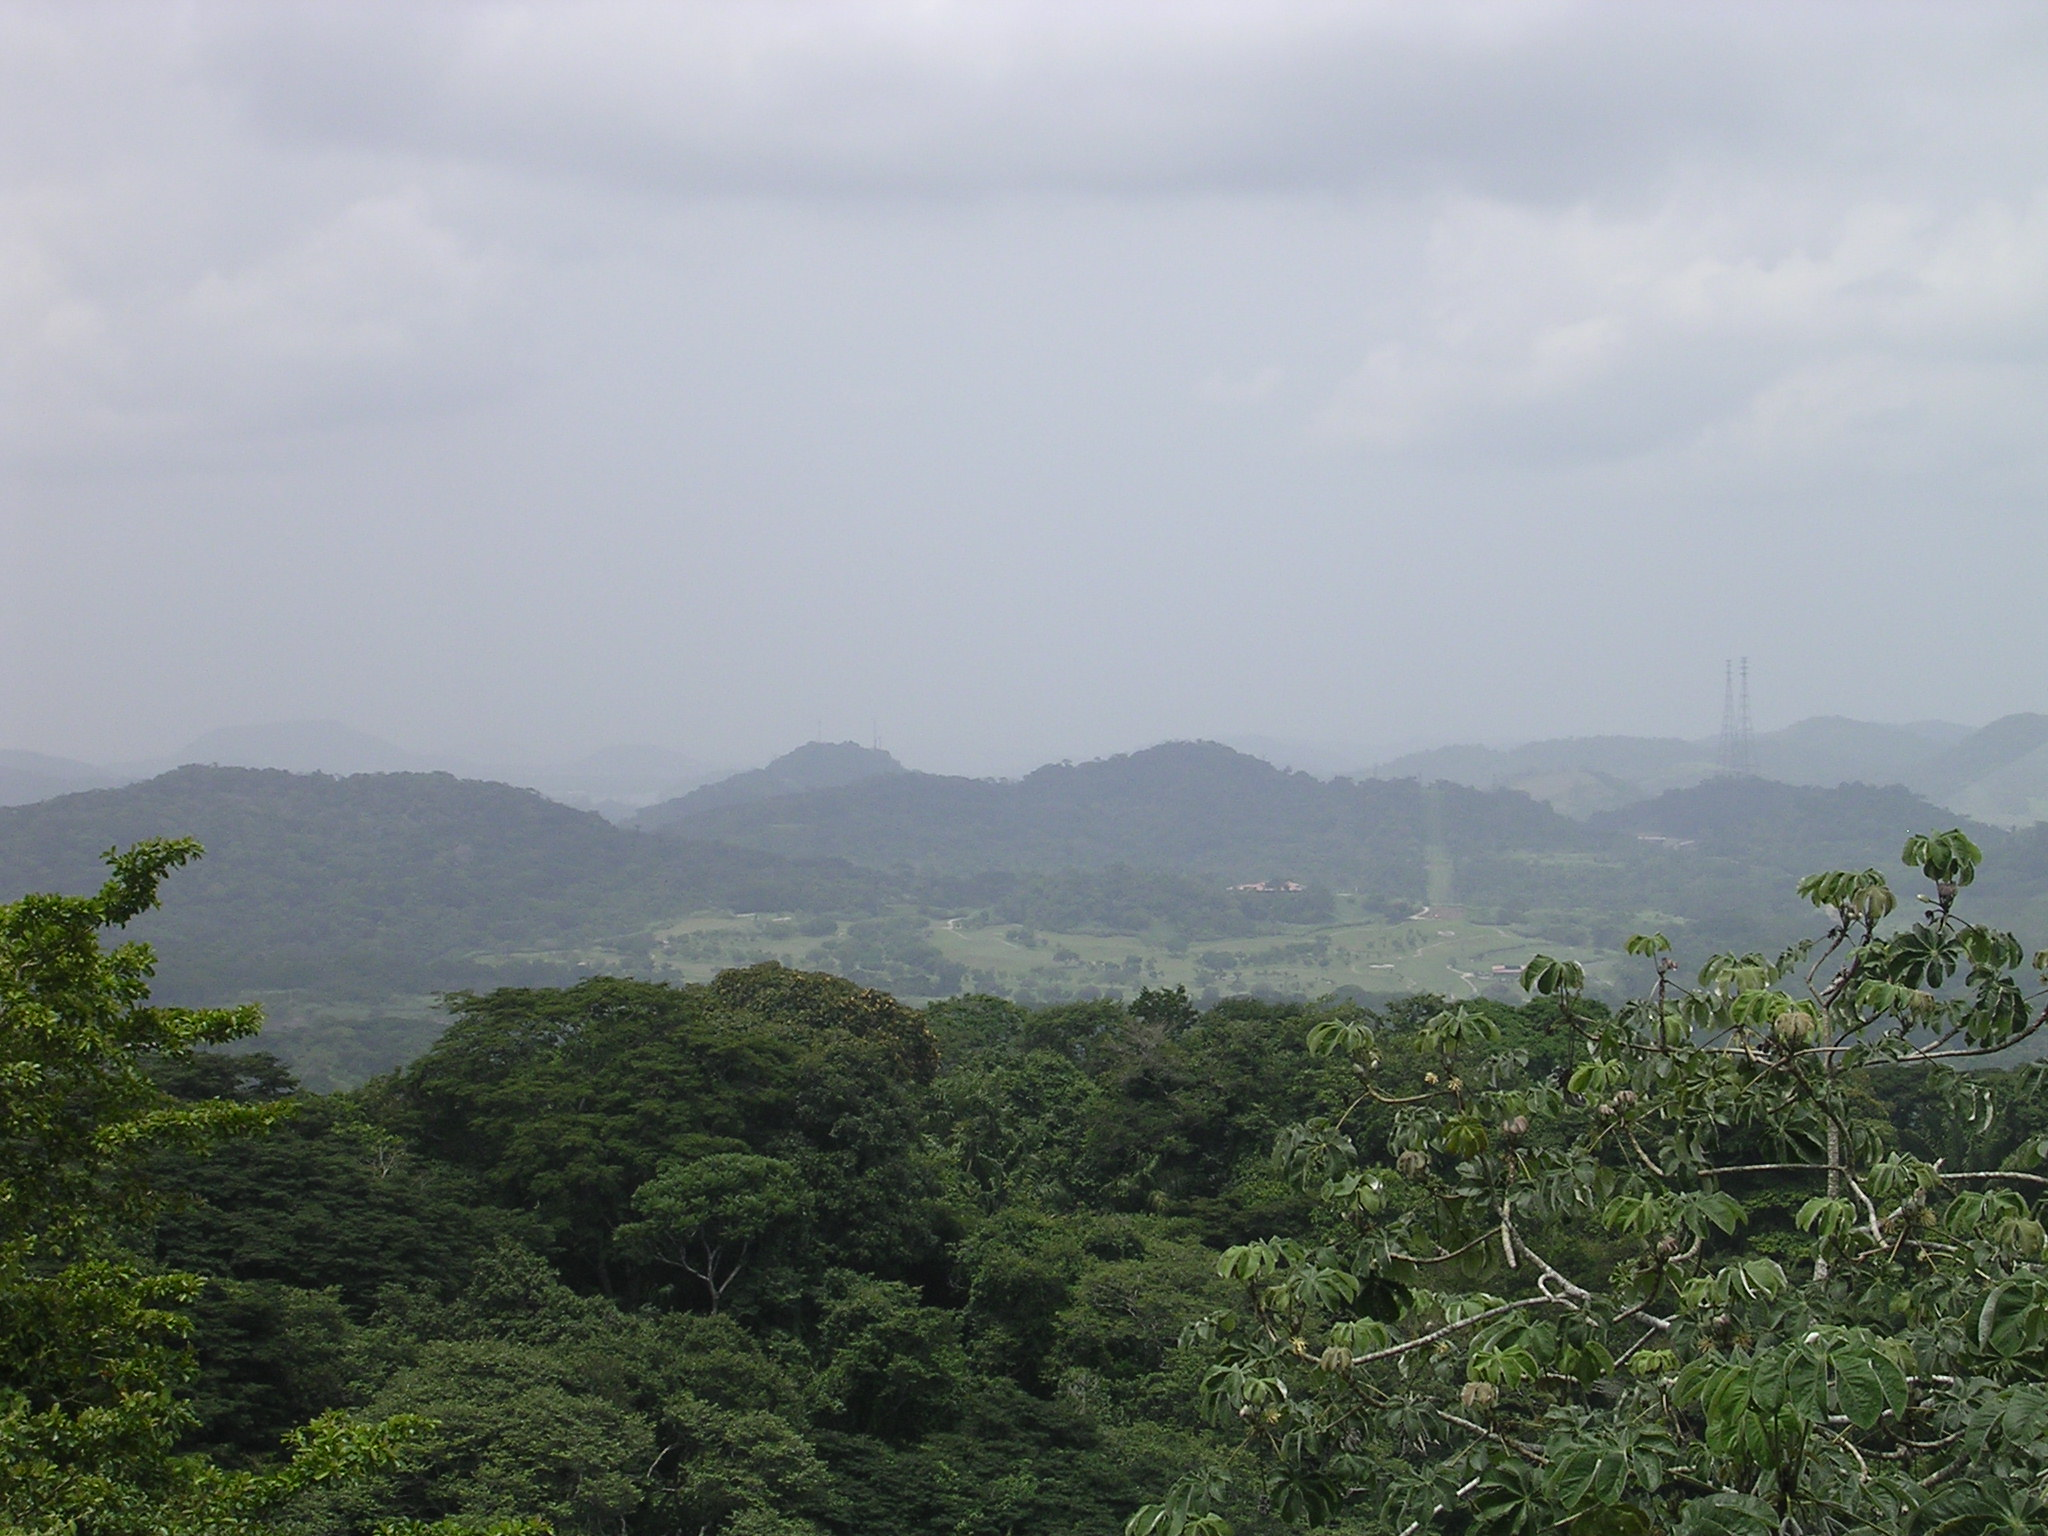 FileView from Canopy Tower in Gamboa Panama 01.jpg & File:View from Canopy Tower in Gamboa Panama 01.jpg - Wikimedia ...